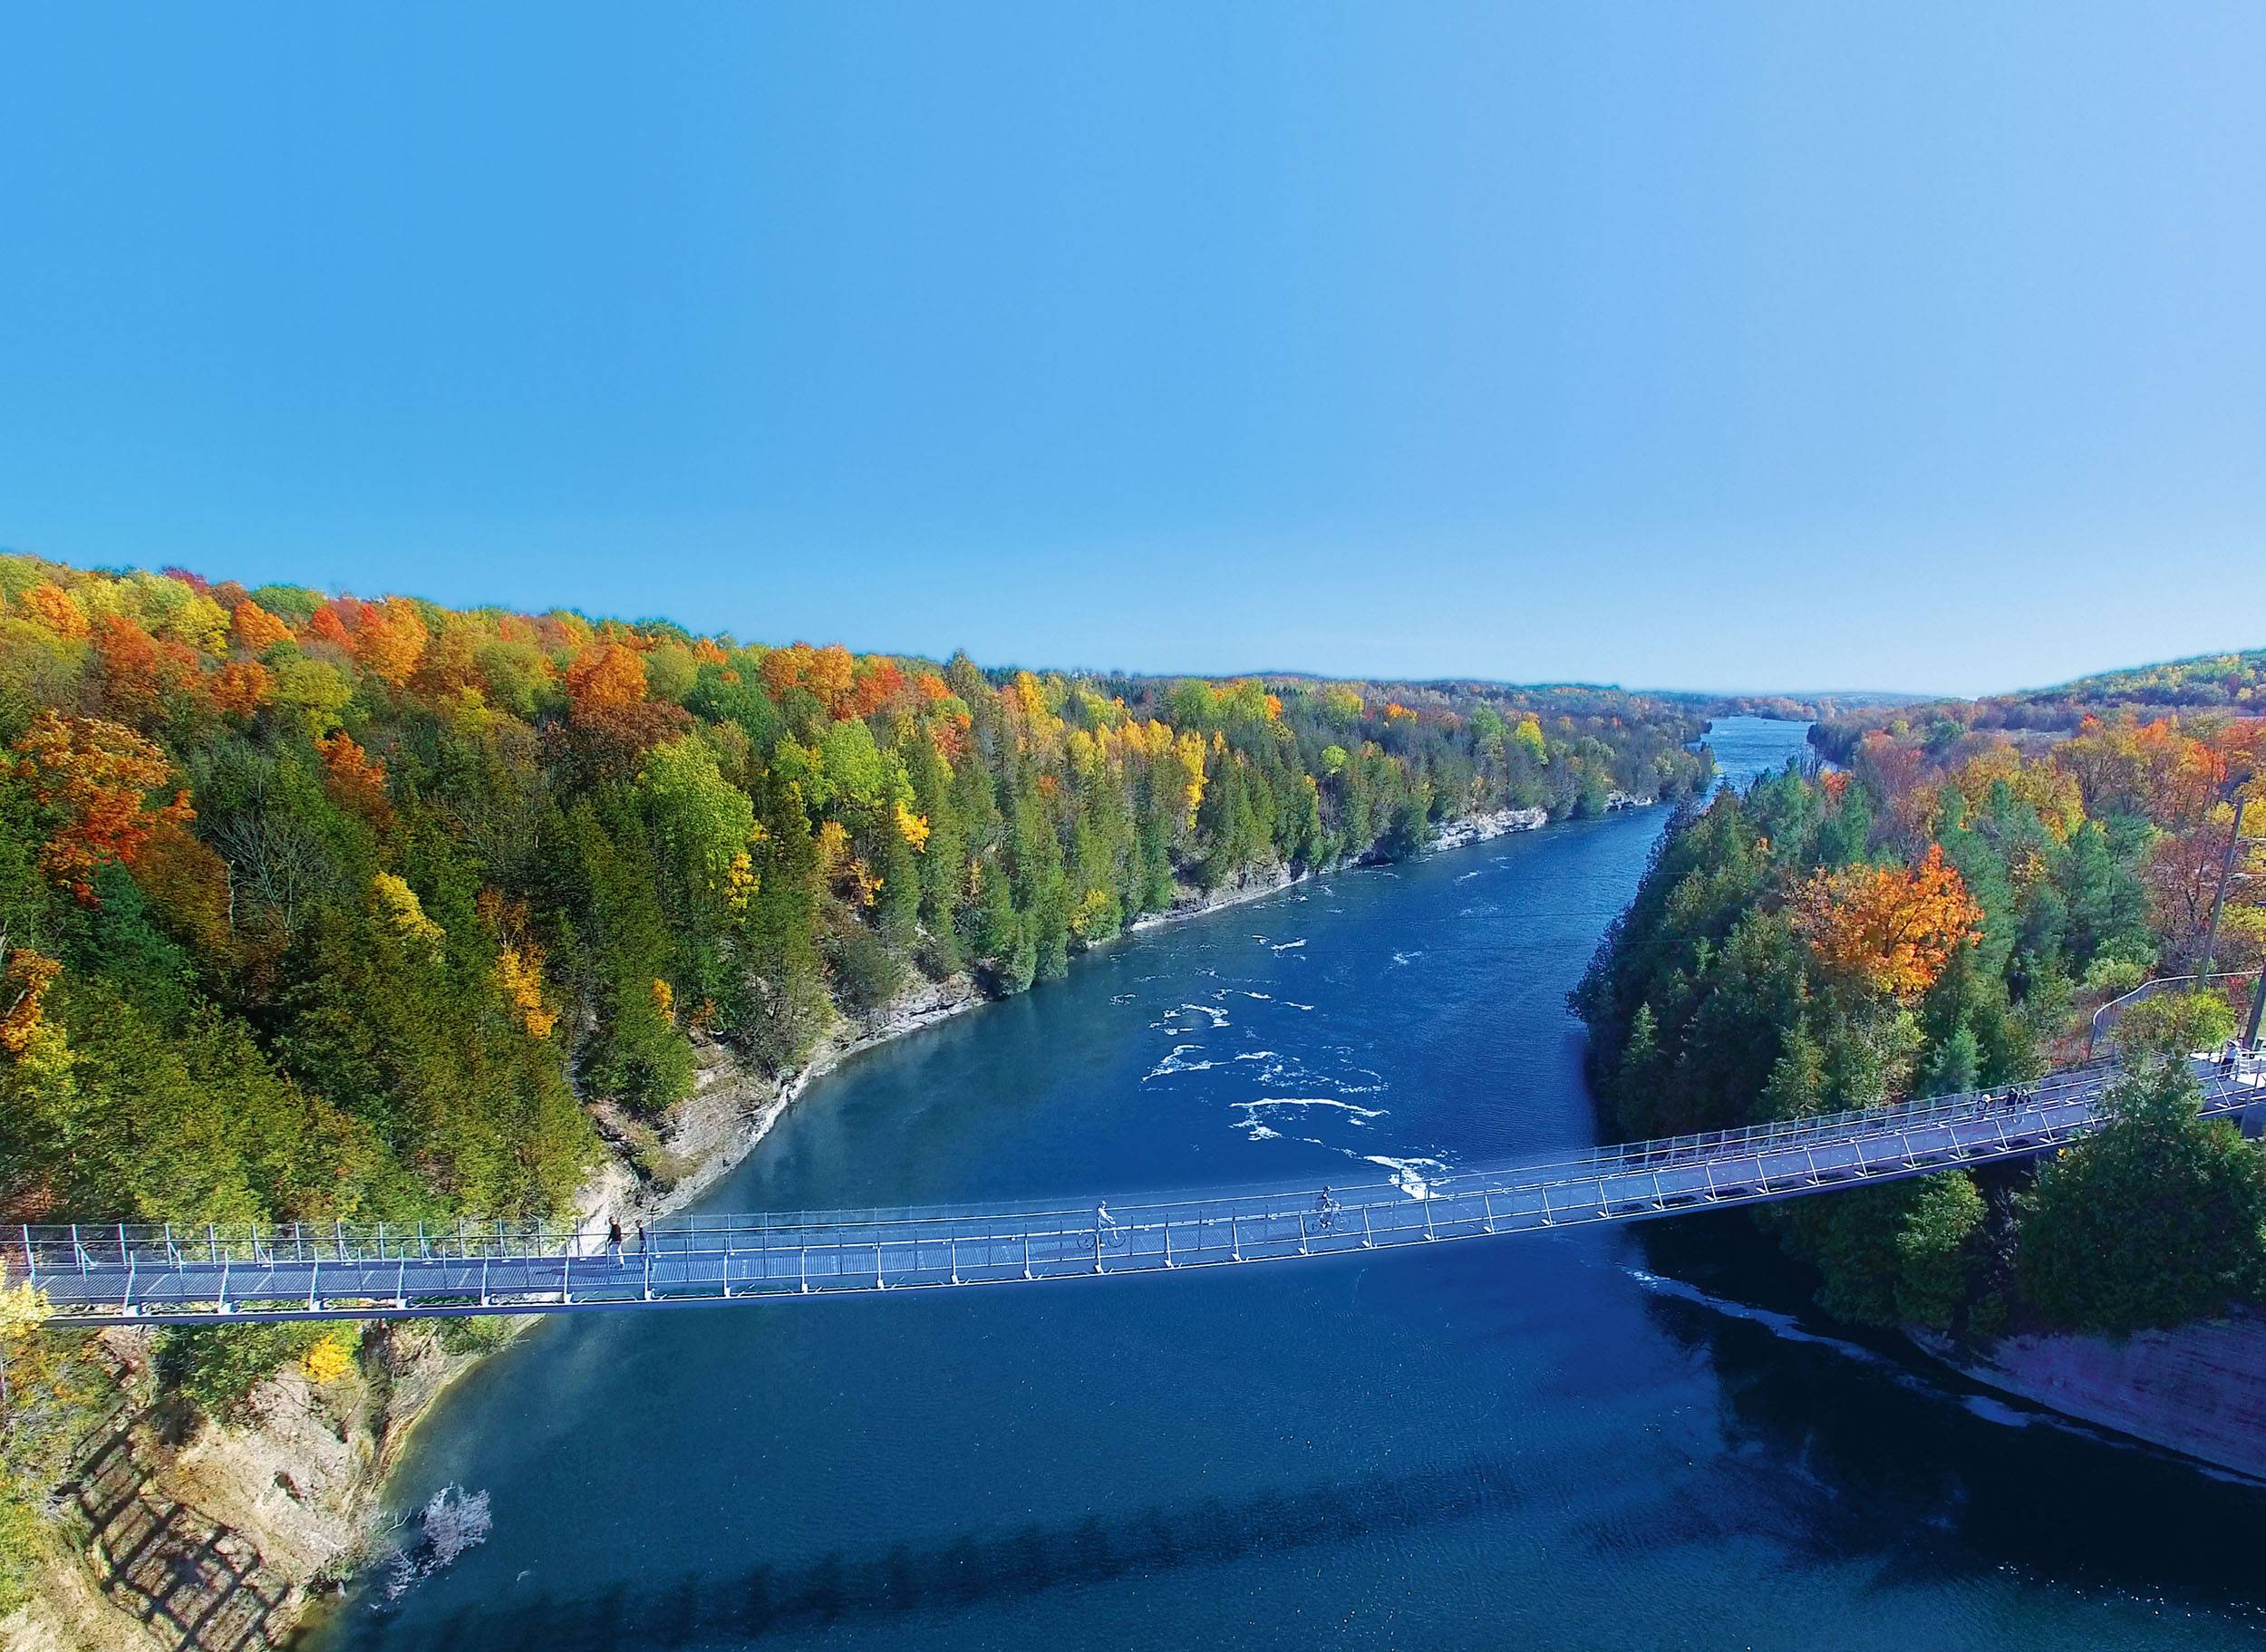 Ranney Gorge Suspension Bridge in Campbellford in late summer